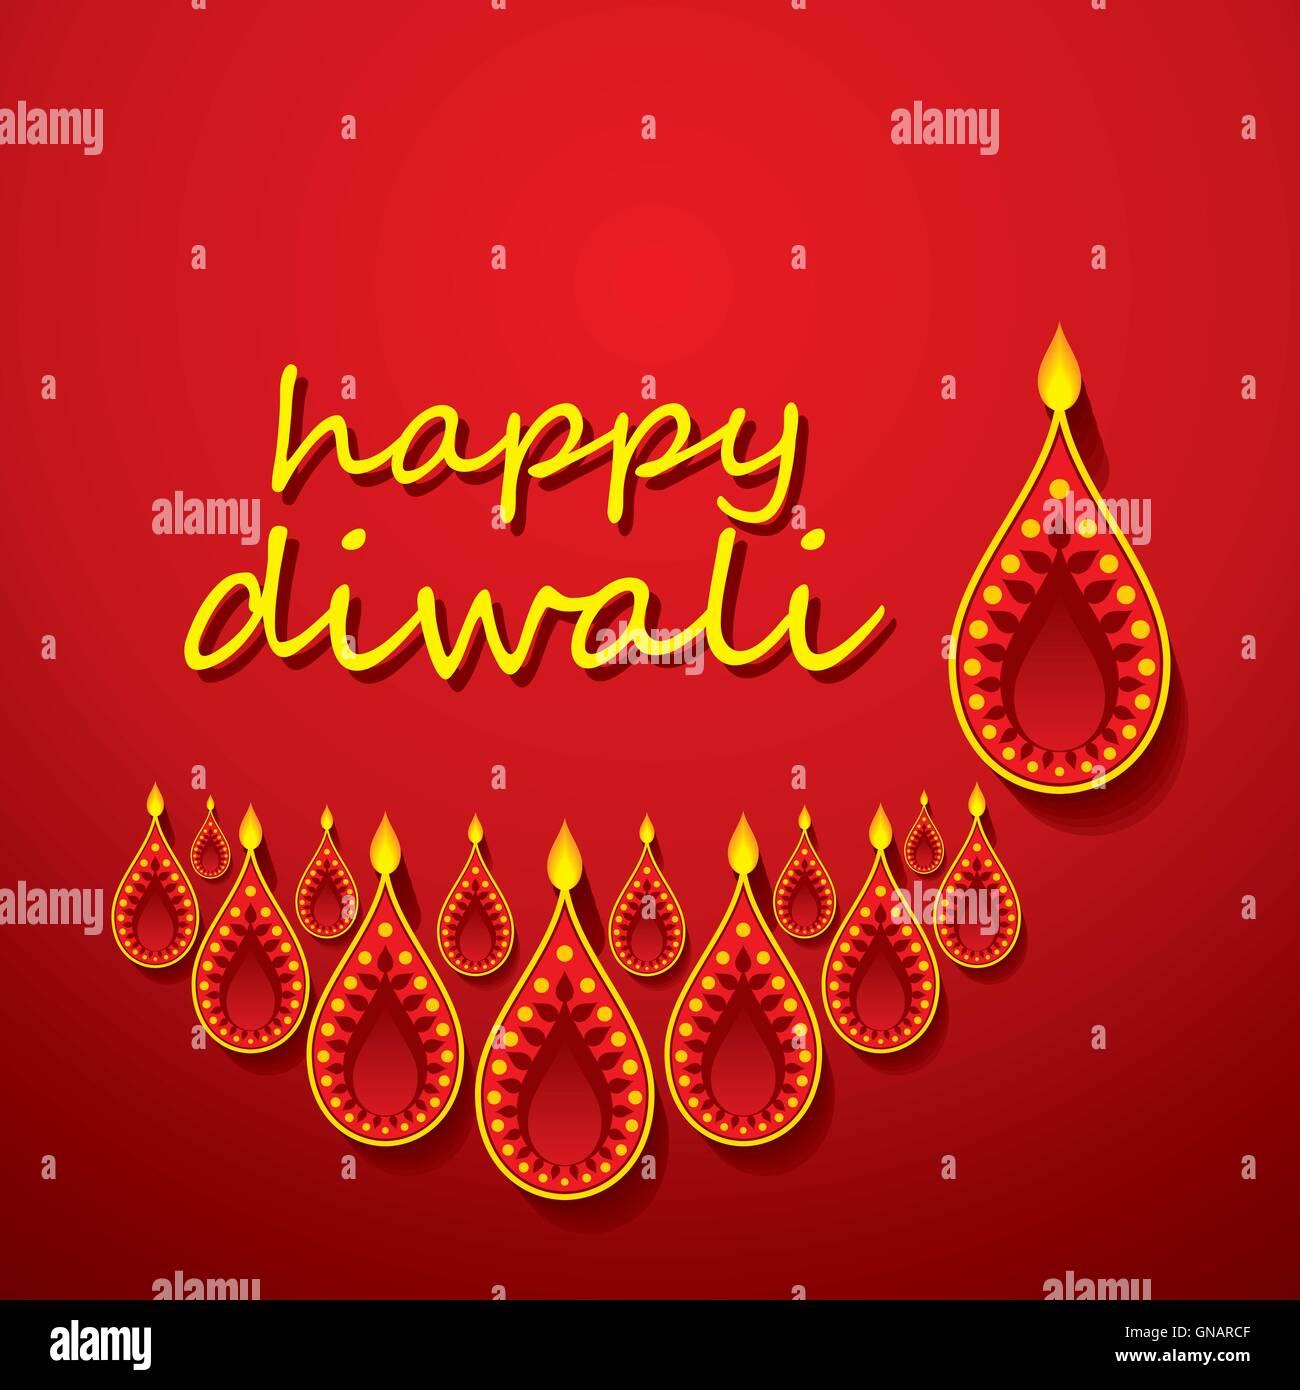 Happy diwali poster or greeting design stock vector art happy diwali poster or greeting design m4hsunfo